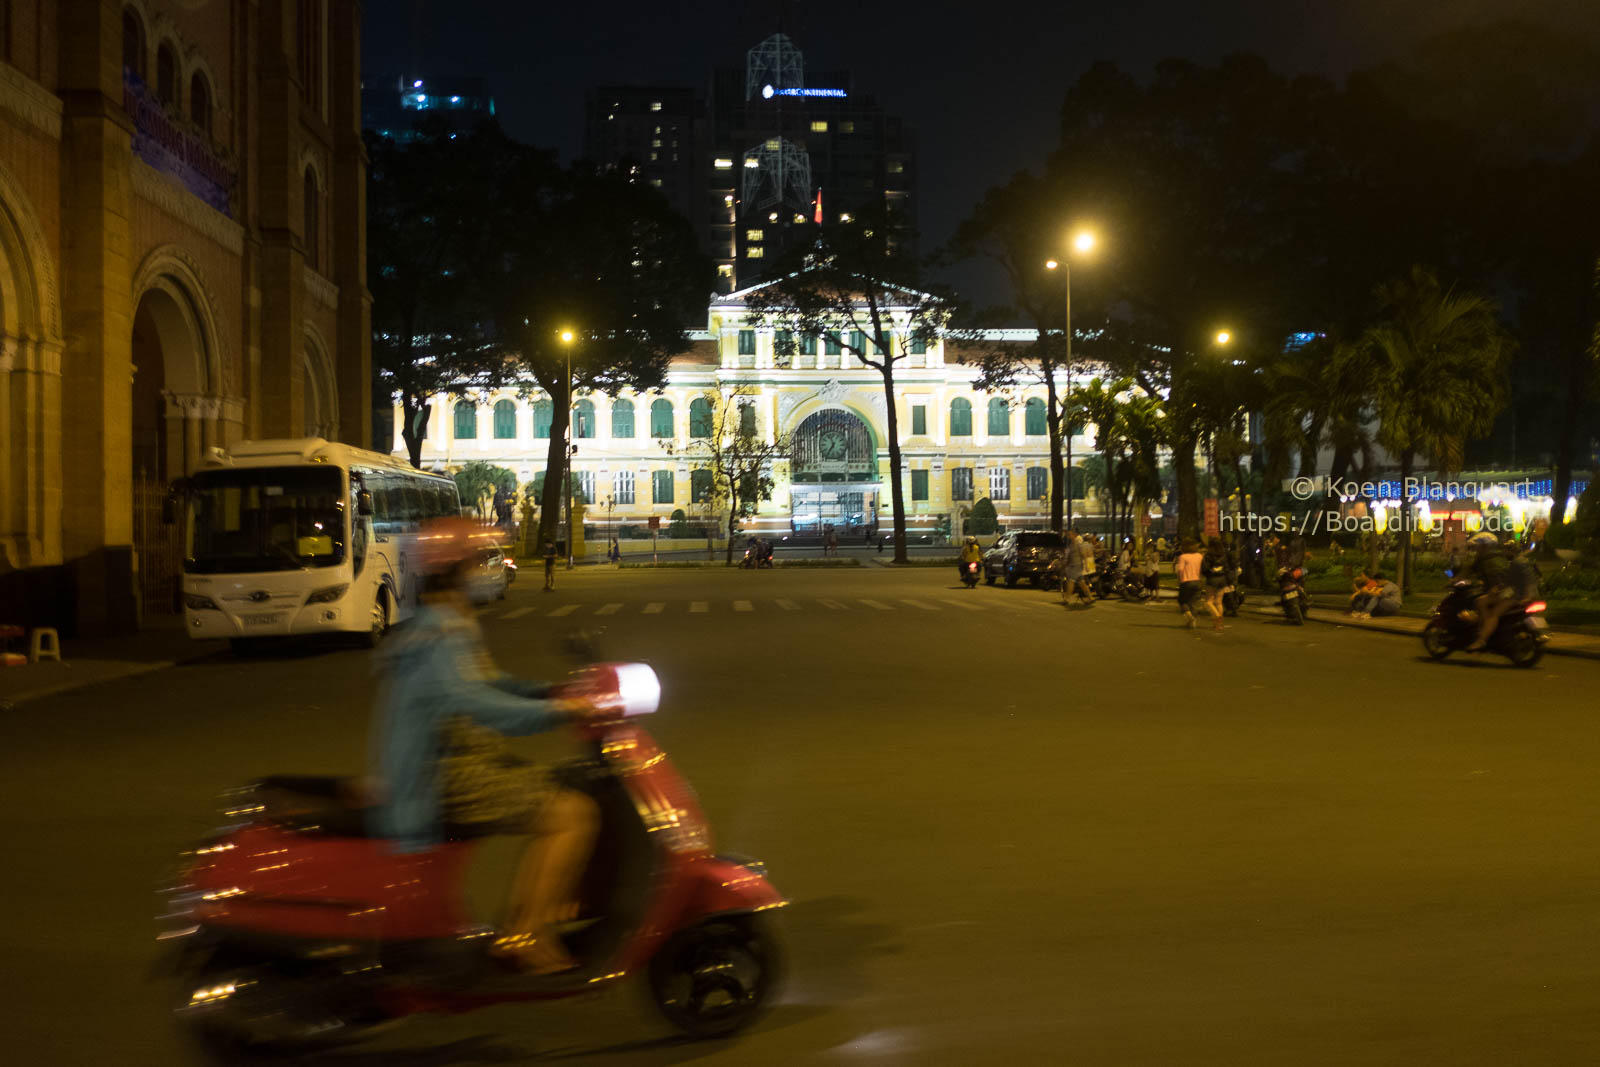 Driving past the central post building in Saigon